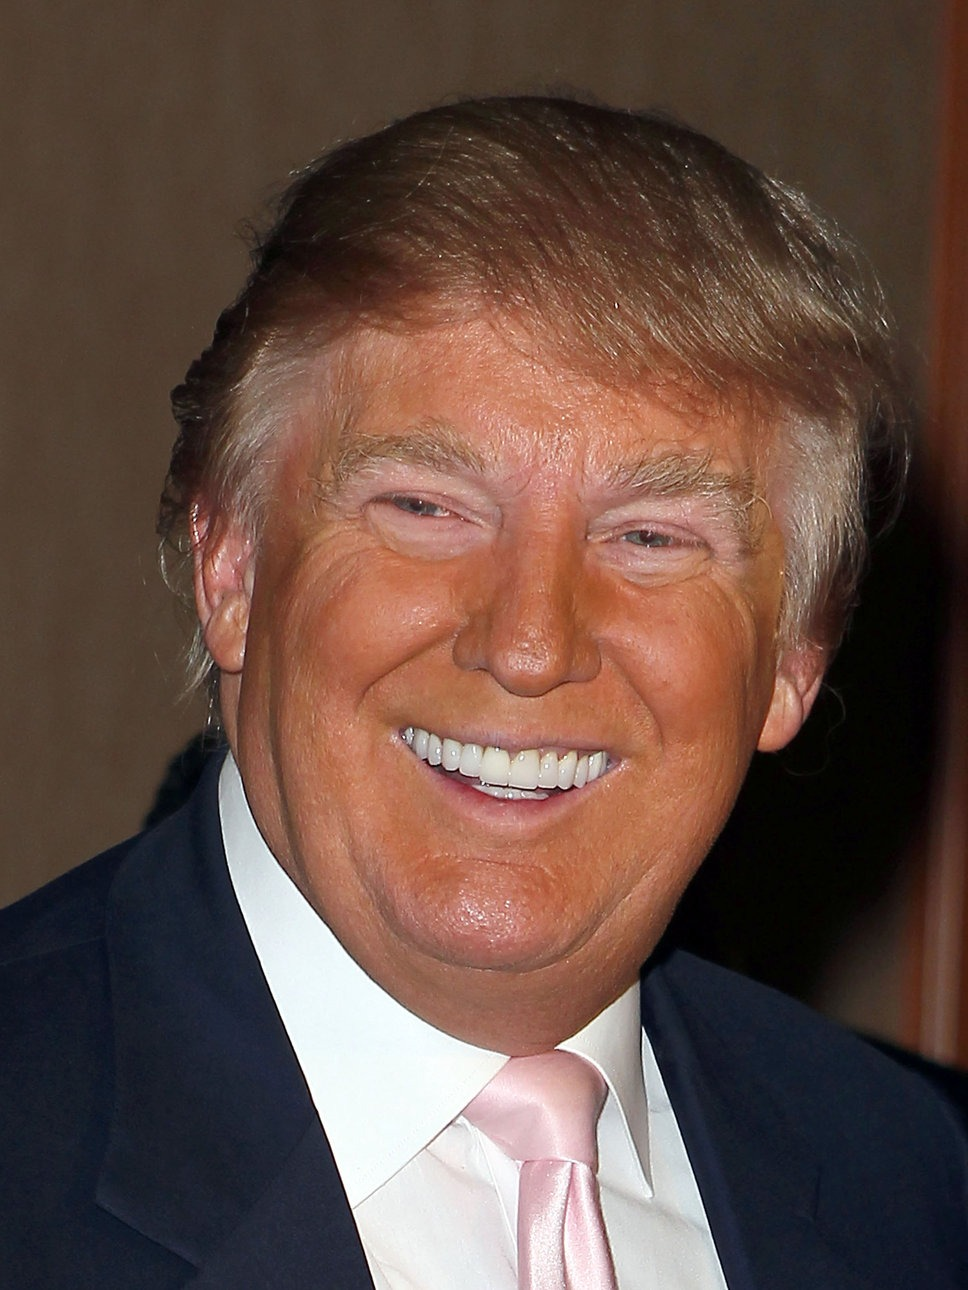 Donald Trump Cosmetic Dentistry